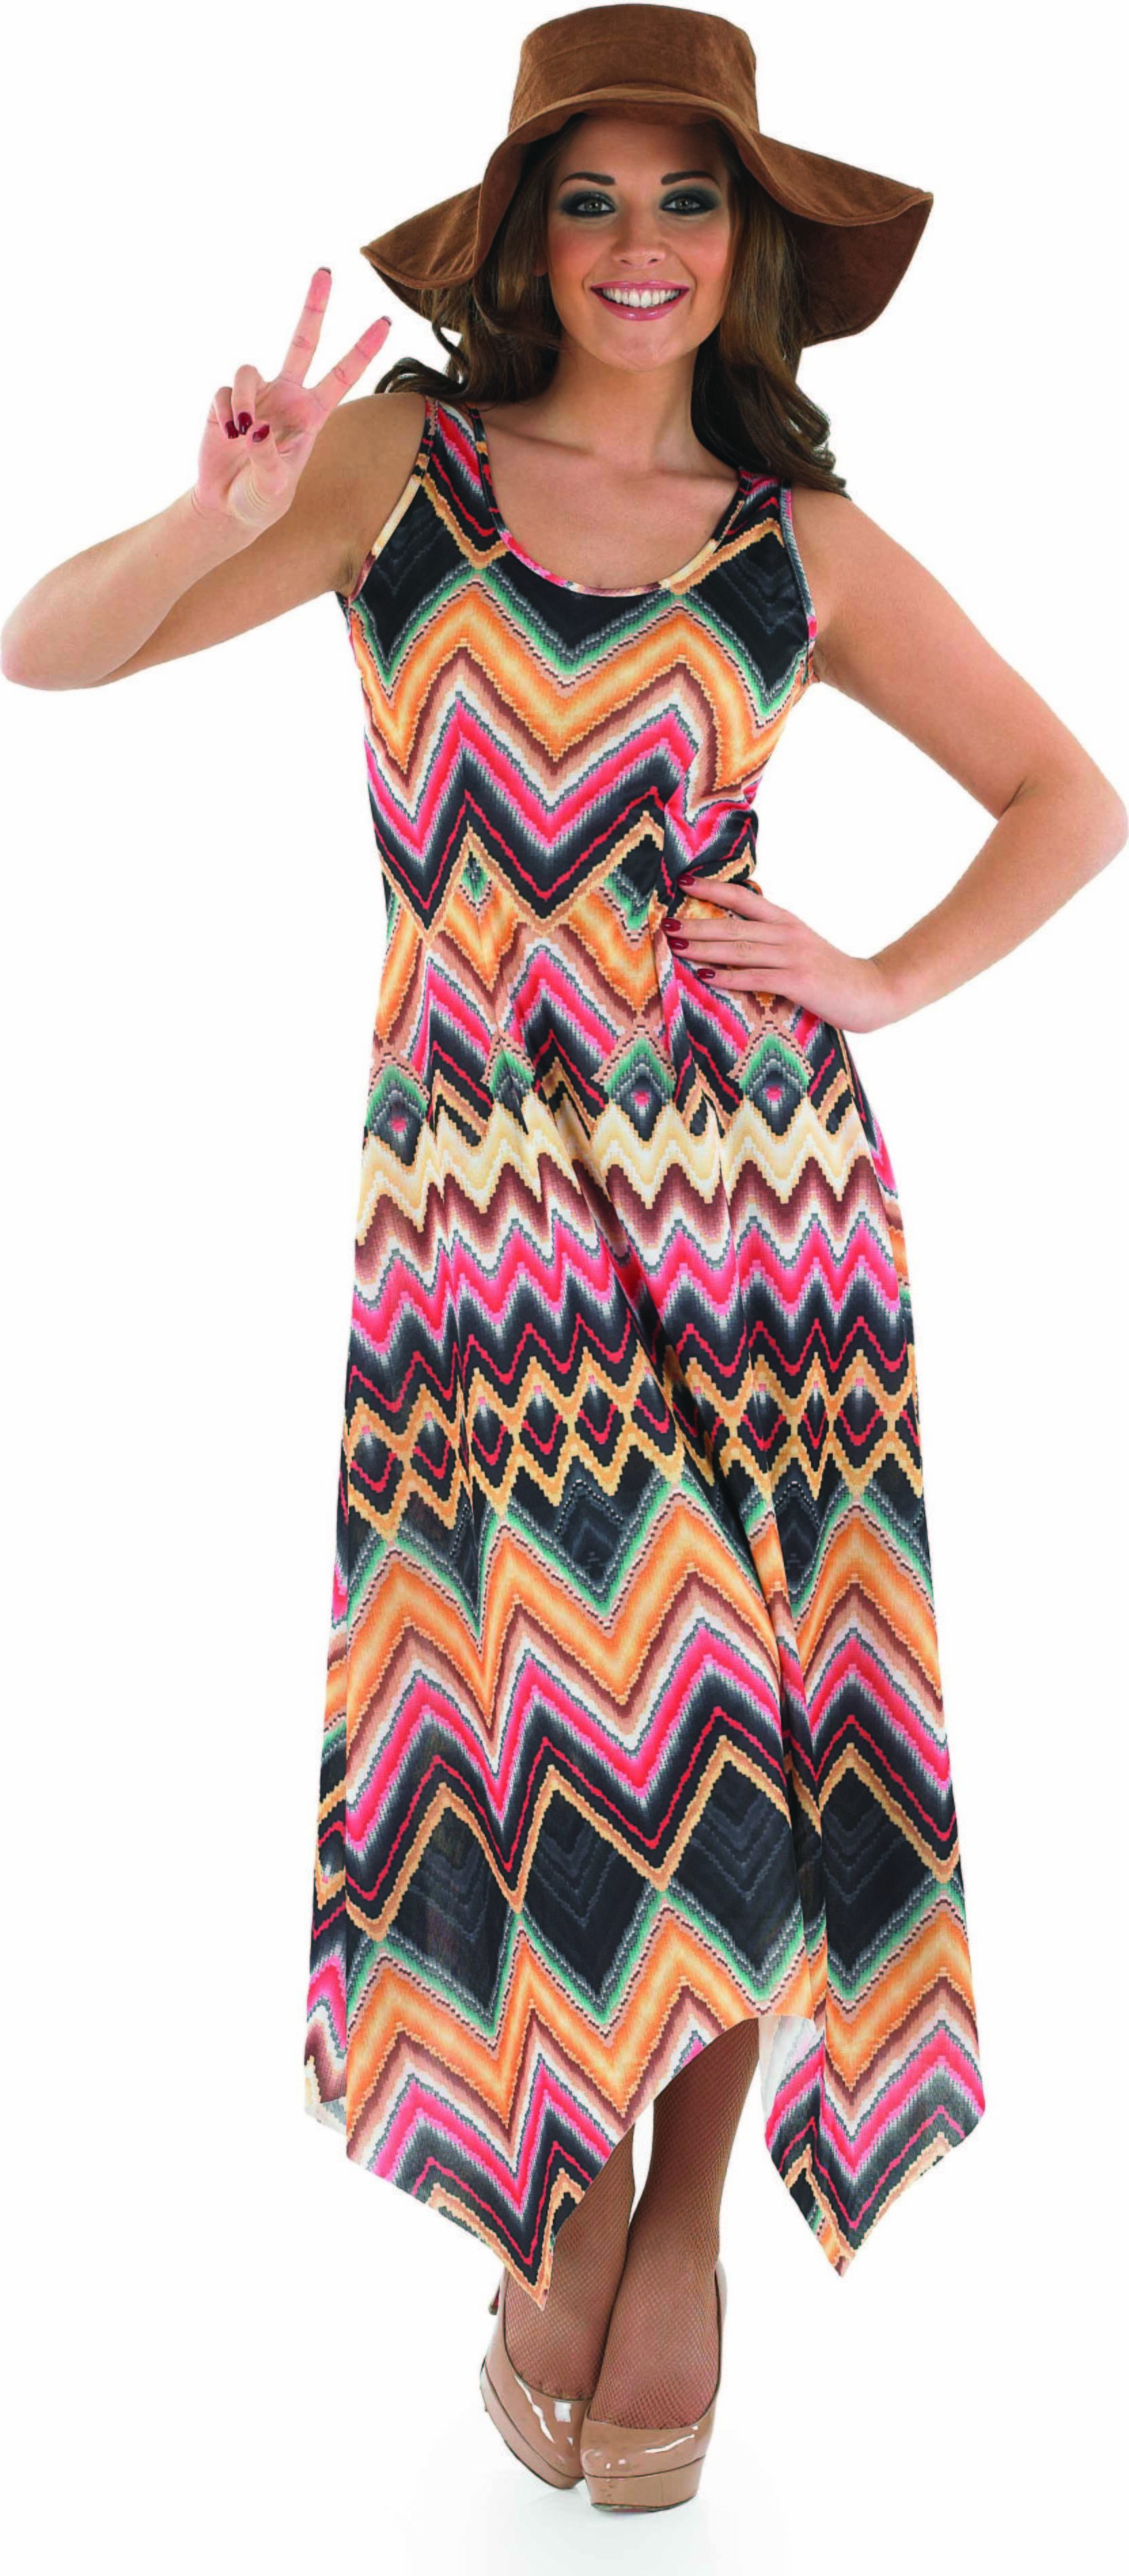 Ladies Hippie Dress Hippy Outfit - (Multicolour)